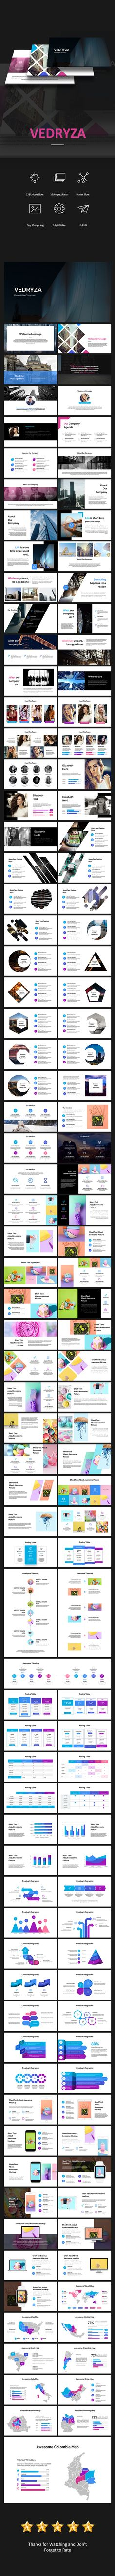 #Vedryza Powerpoint - Creative #PowerPoint Templates Download here: https://graphicriver.net/item/vedryza-powerpoint/20464602?ref=alena994